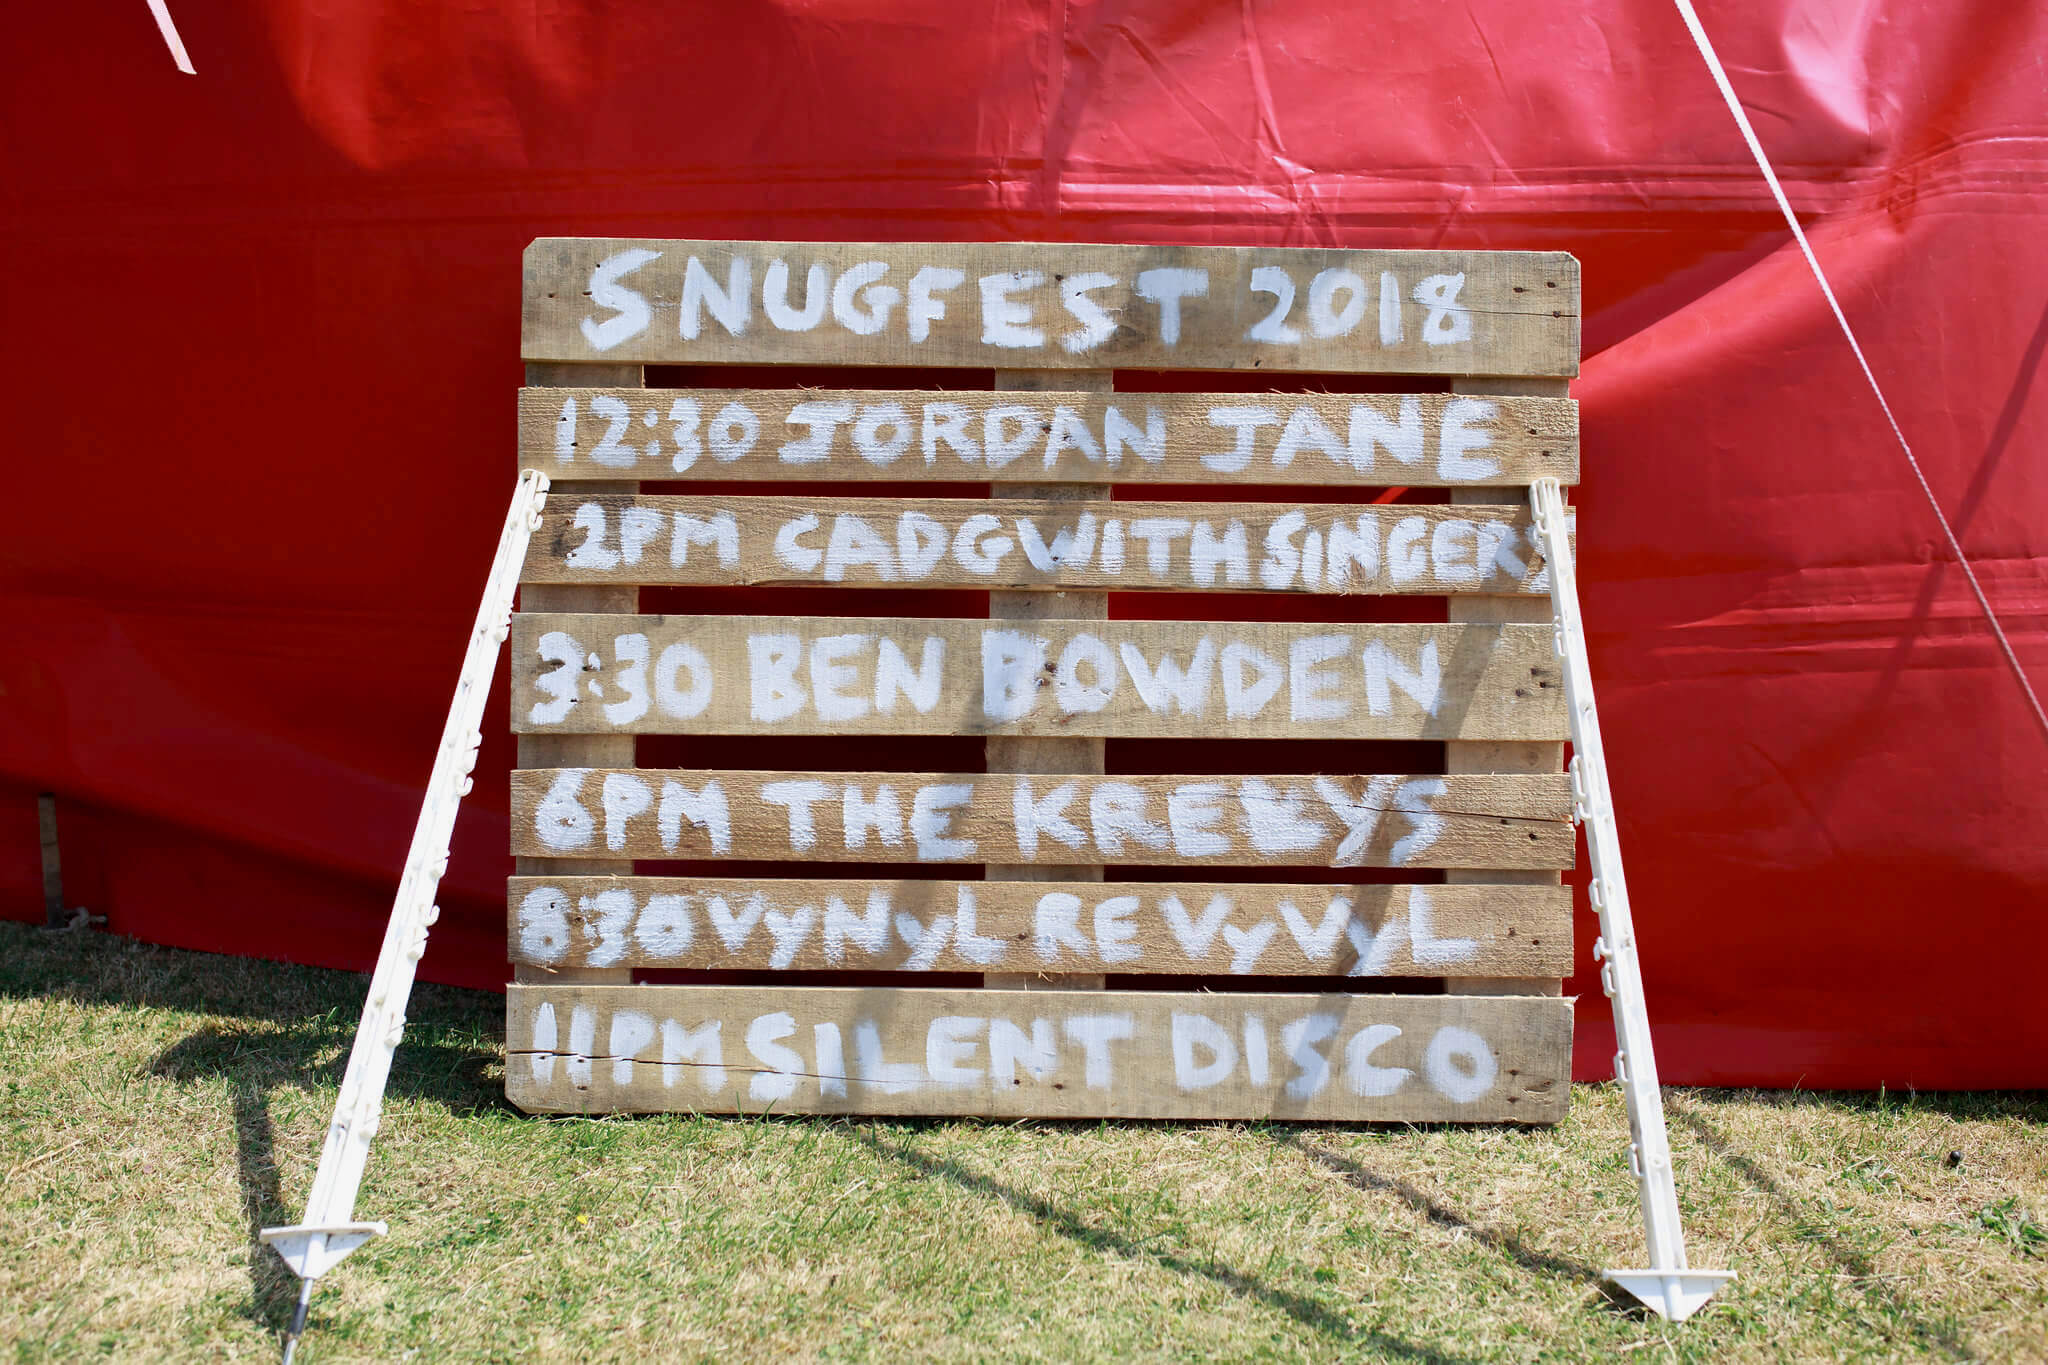 DIY sign with music line up at wedding festival